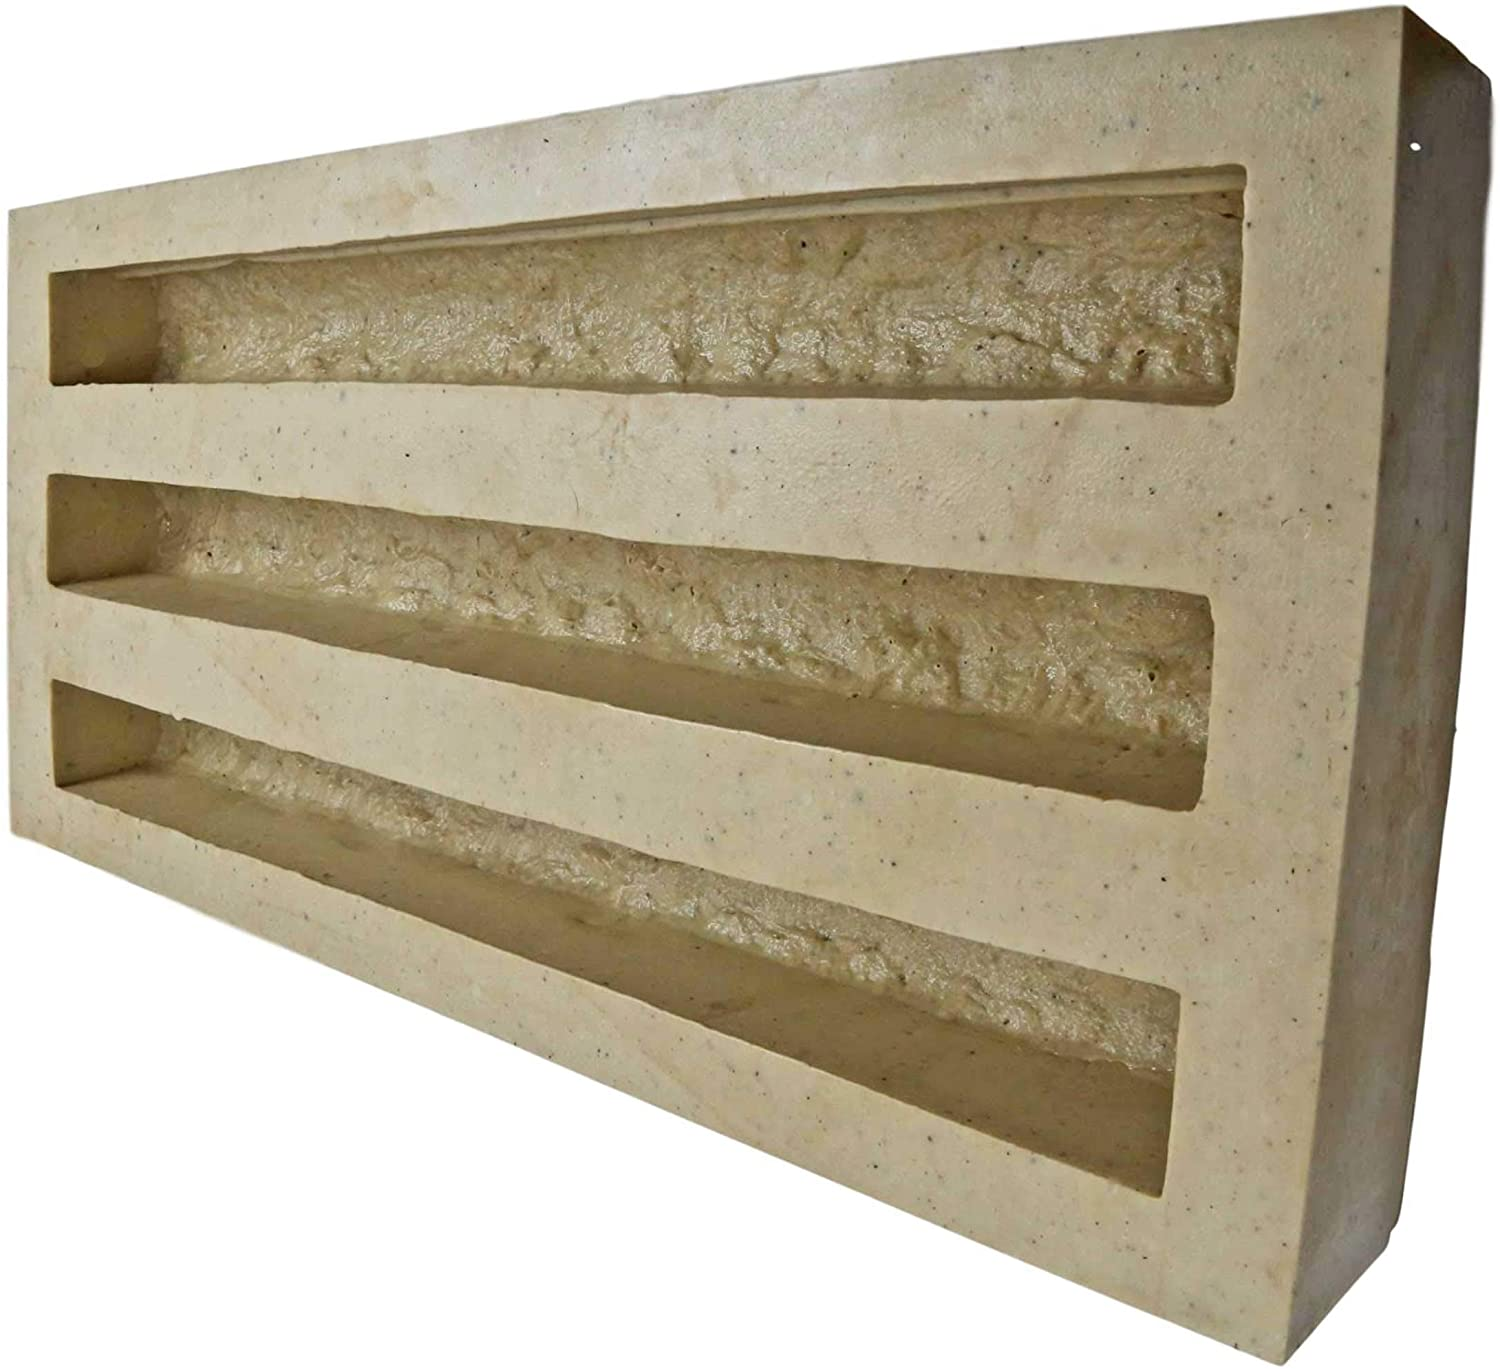 Veneer Stone Rubber Molds for Concrete, Water Table 24